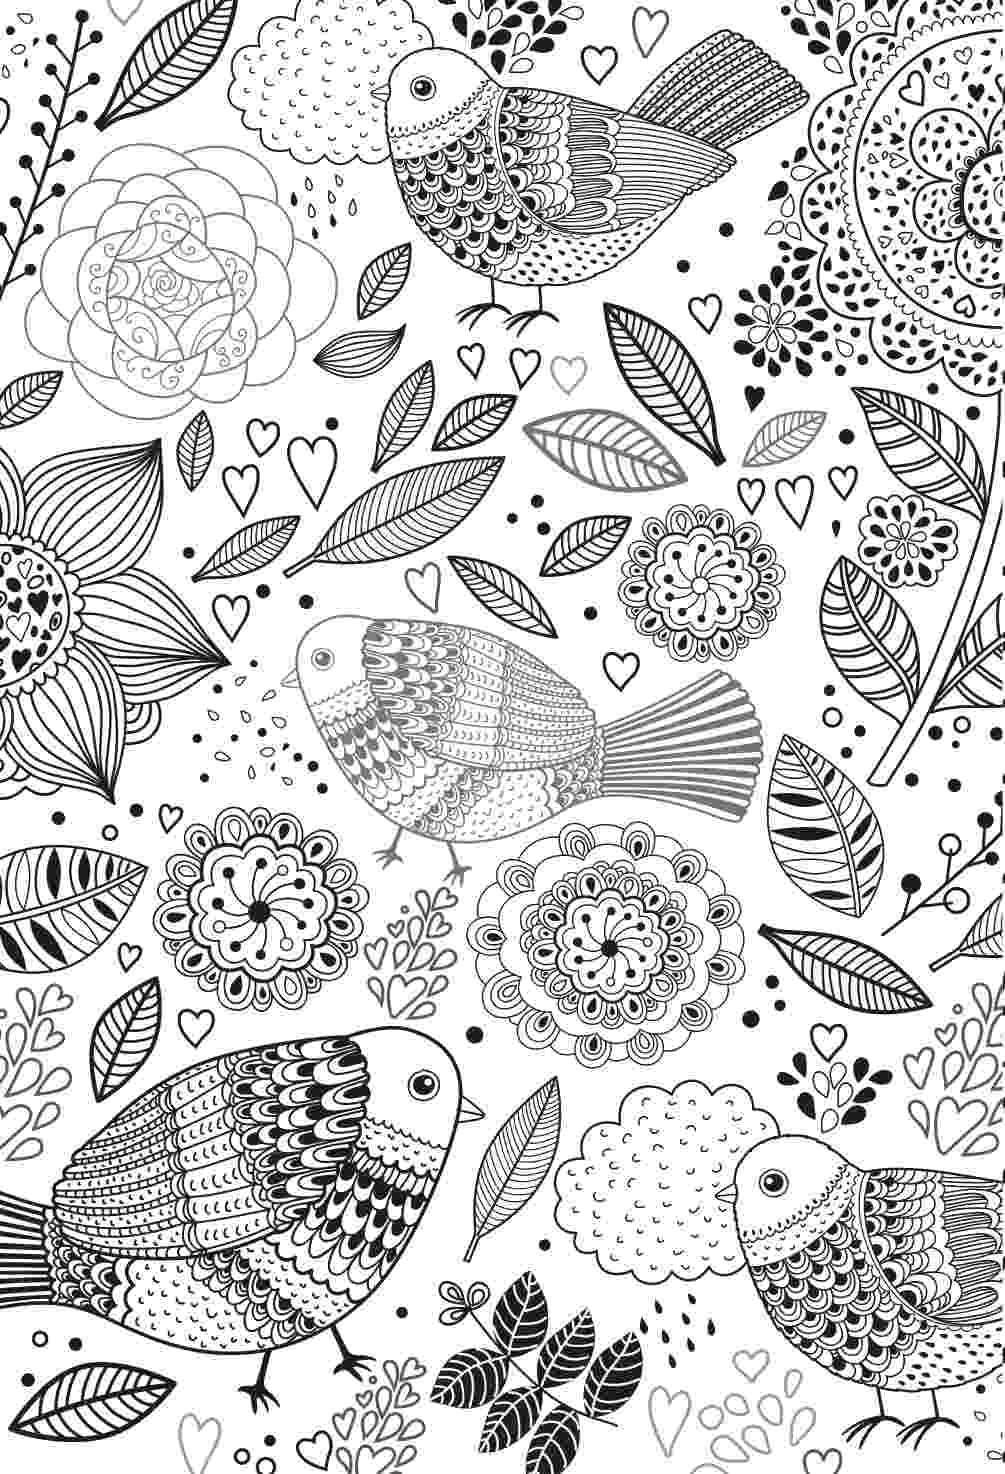 colouring book for adults 20 free adult colouring pages the organised housewife for adults book colouring